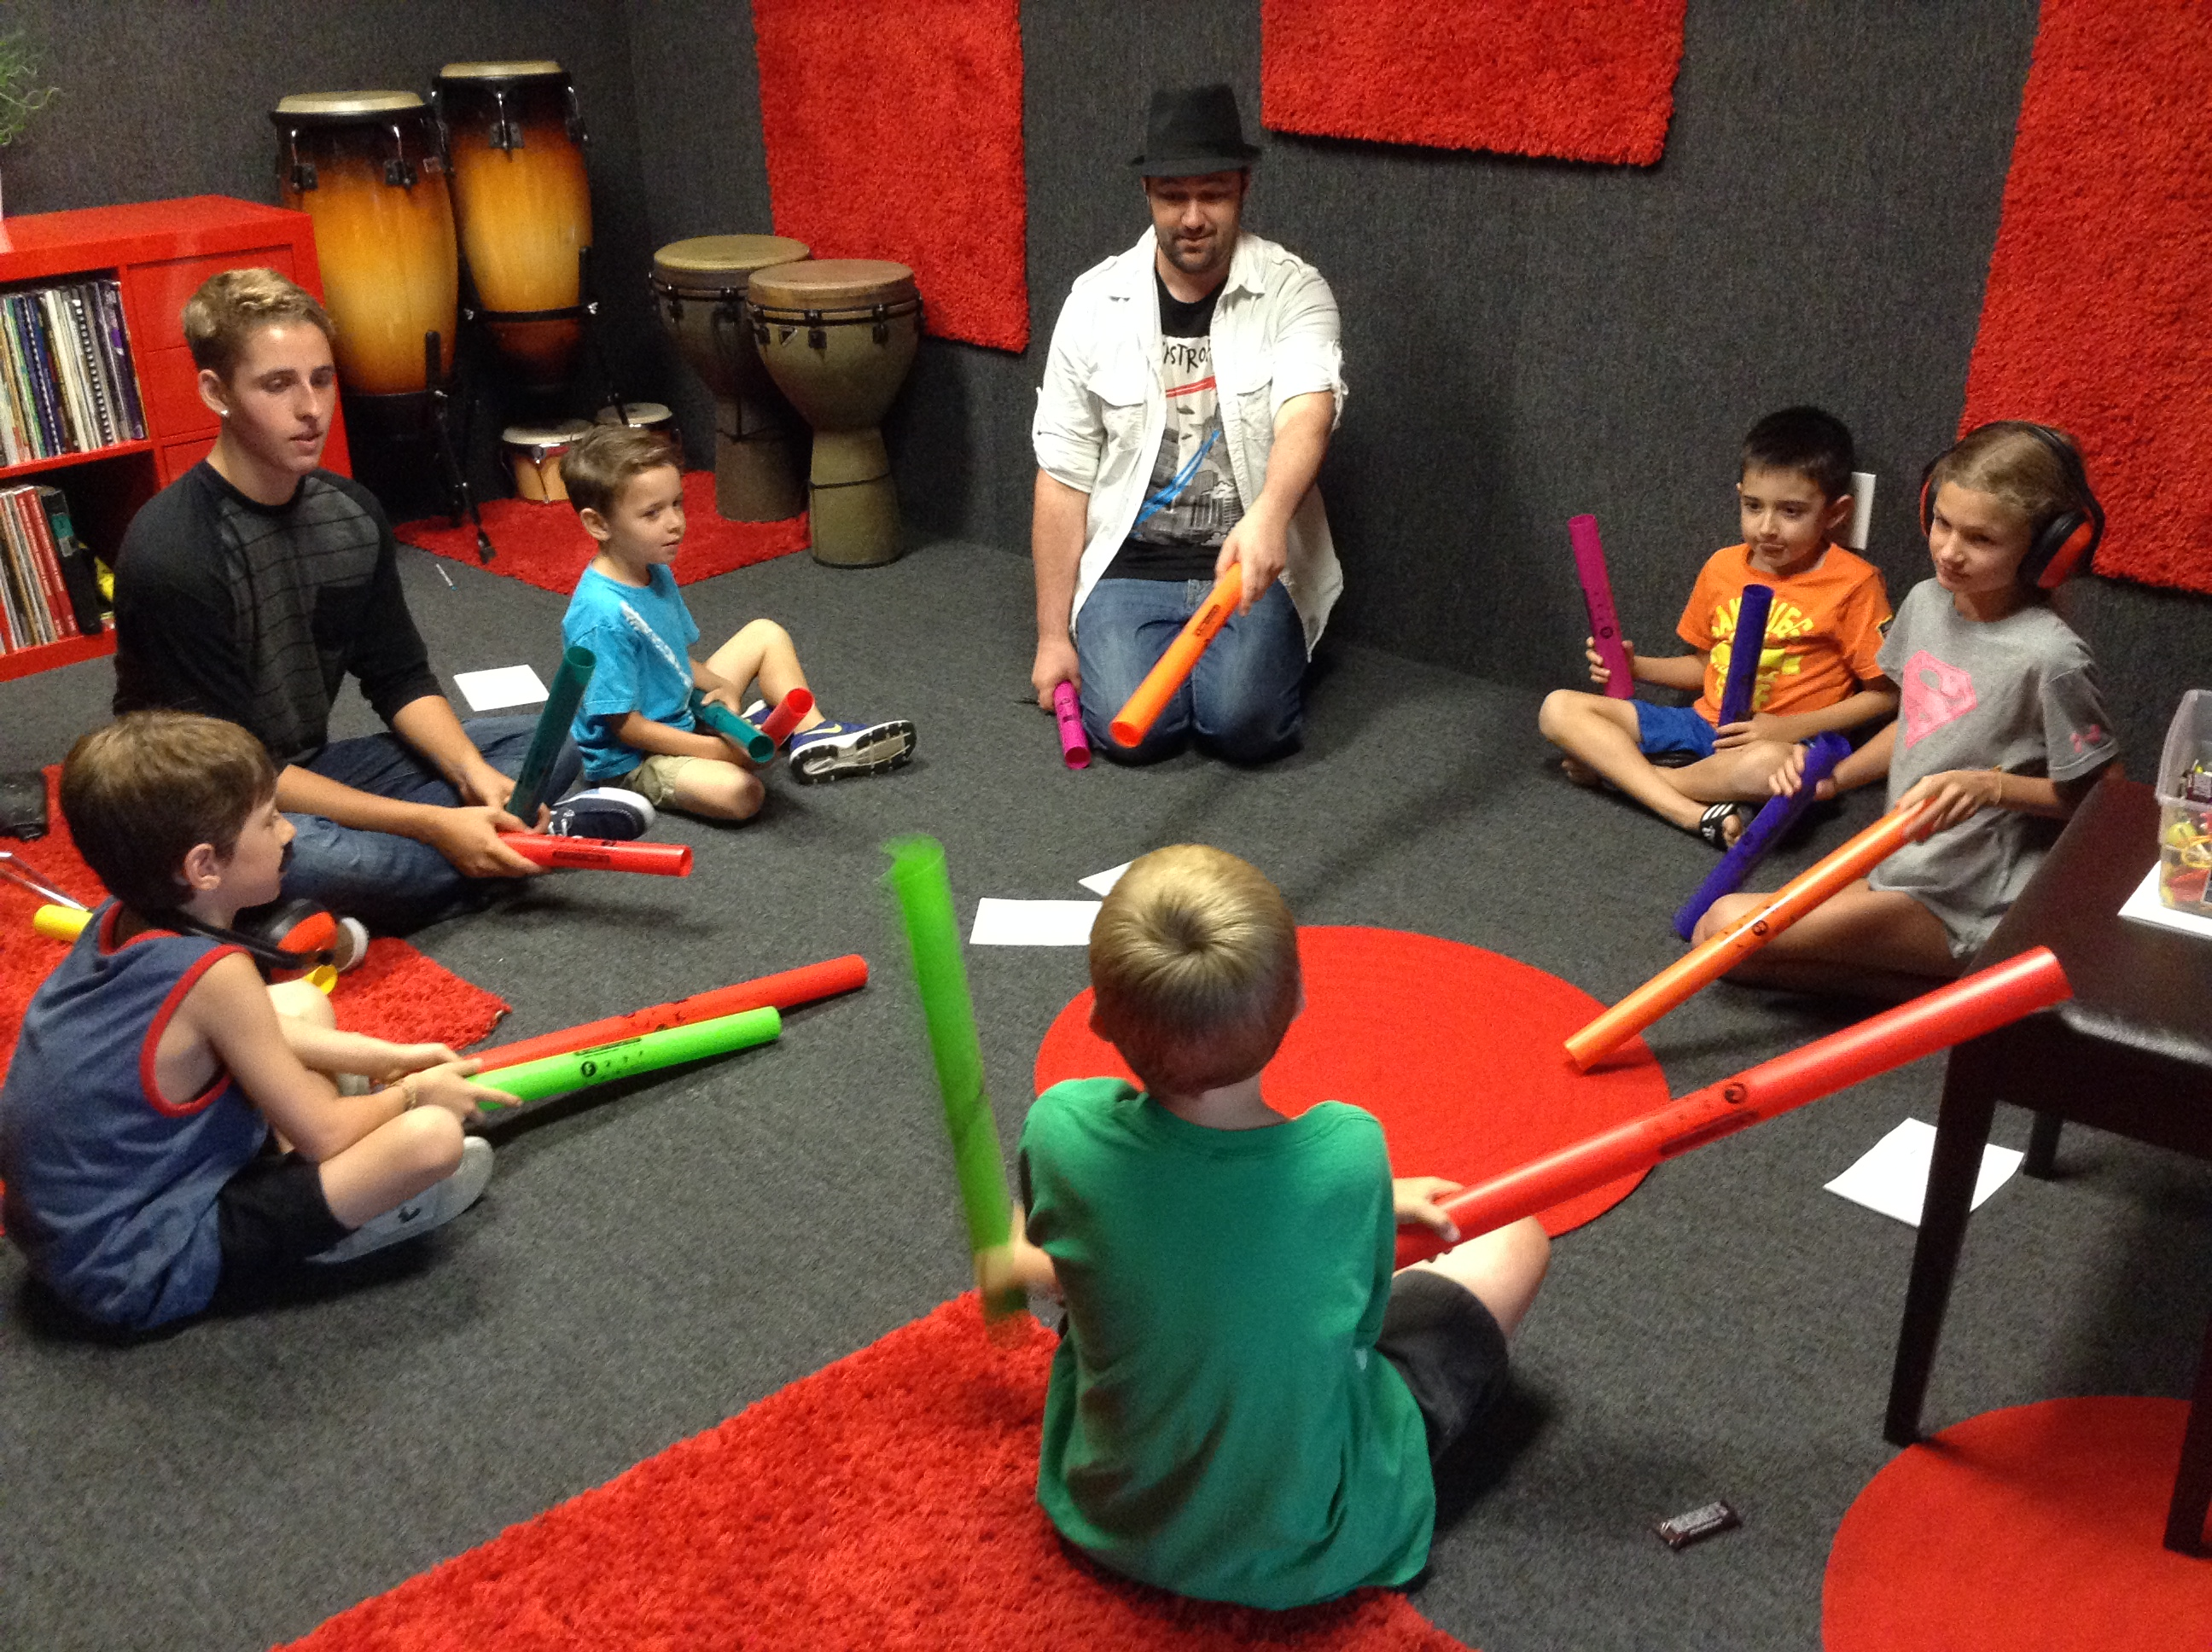 Group music classes for kids in Temecula, CA